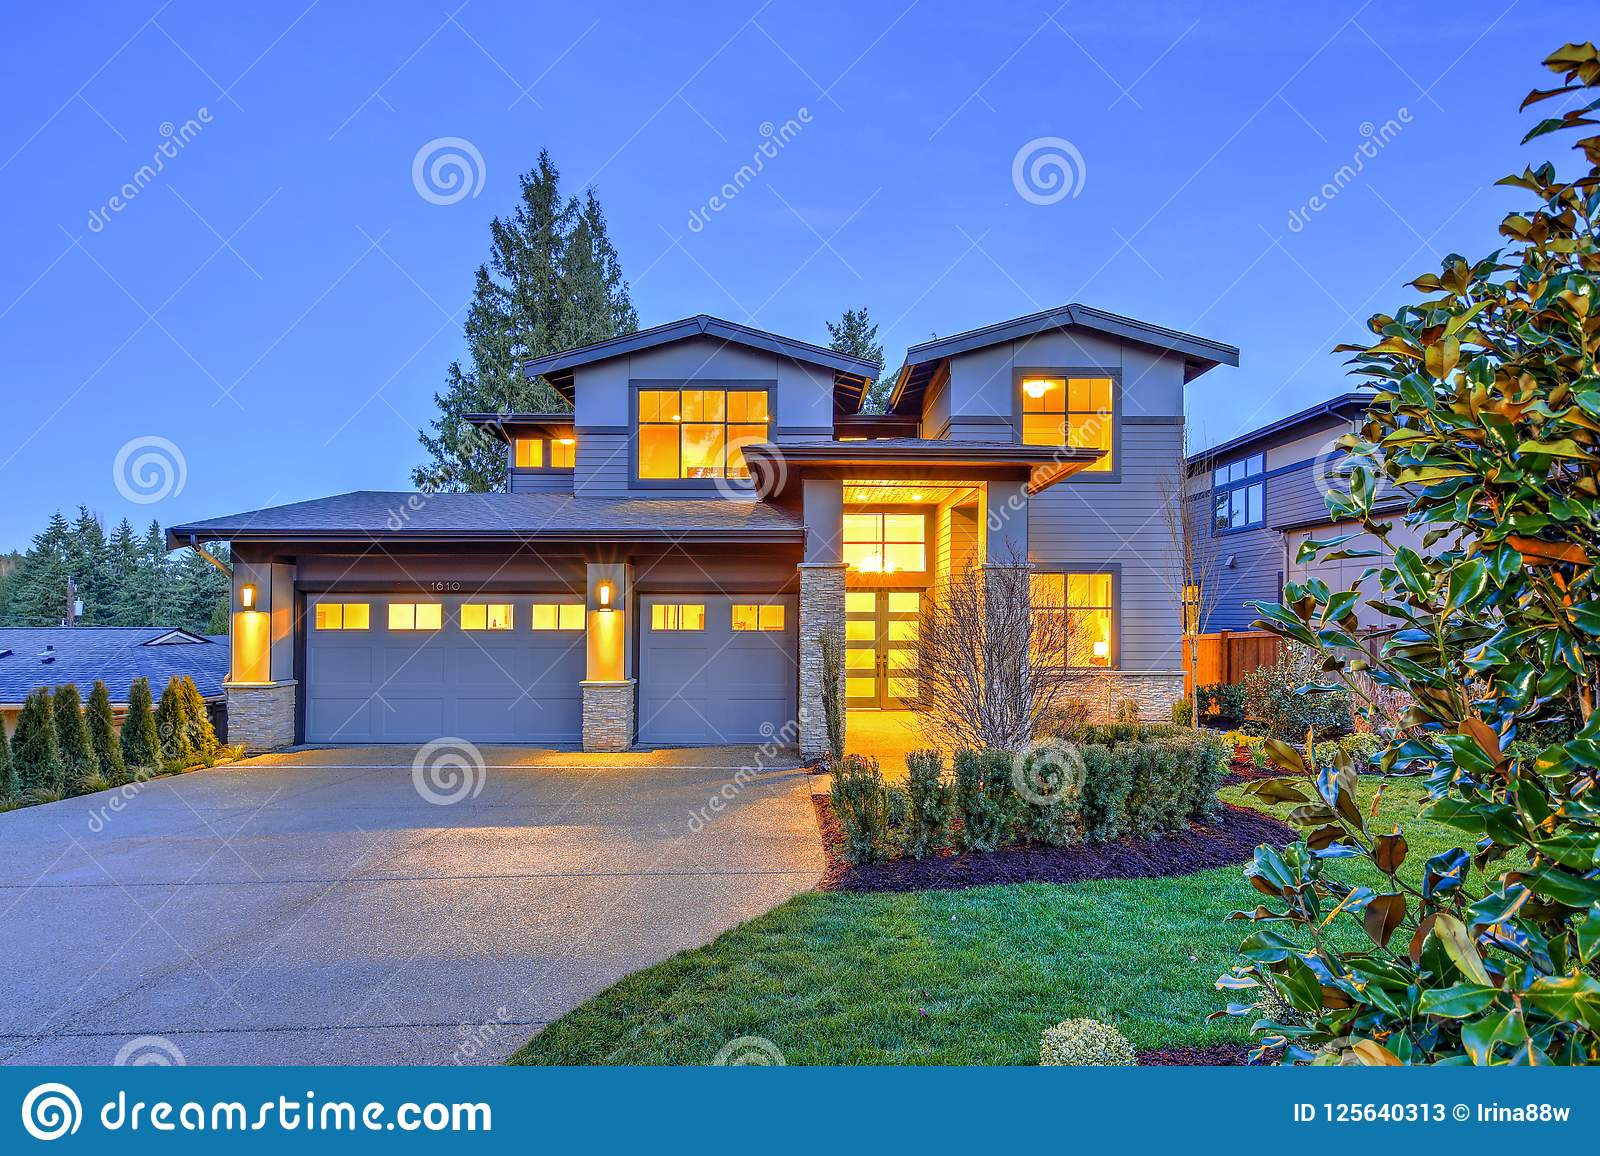 Grey Luxury Modern Two Story Tall House Exterior With Stone Columns Stock Image Image Of Outdoor Estate 125640313